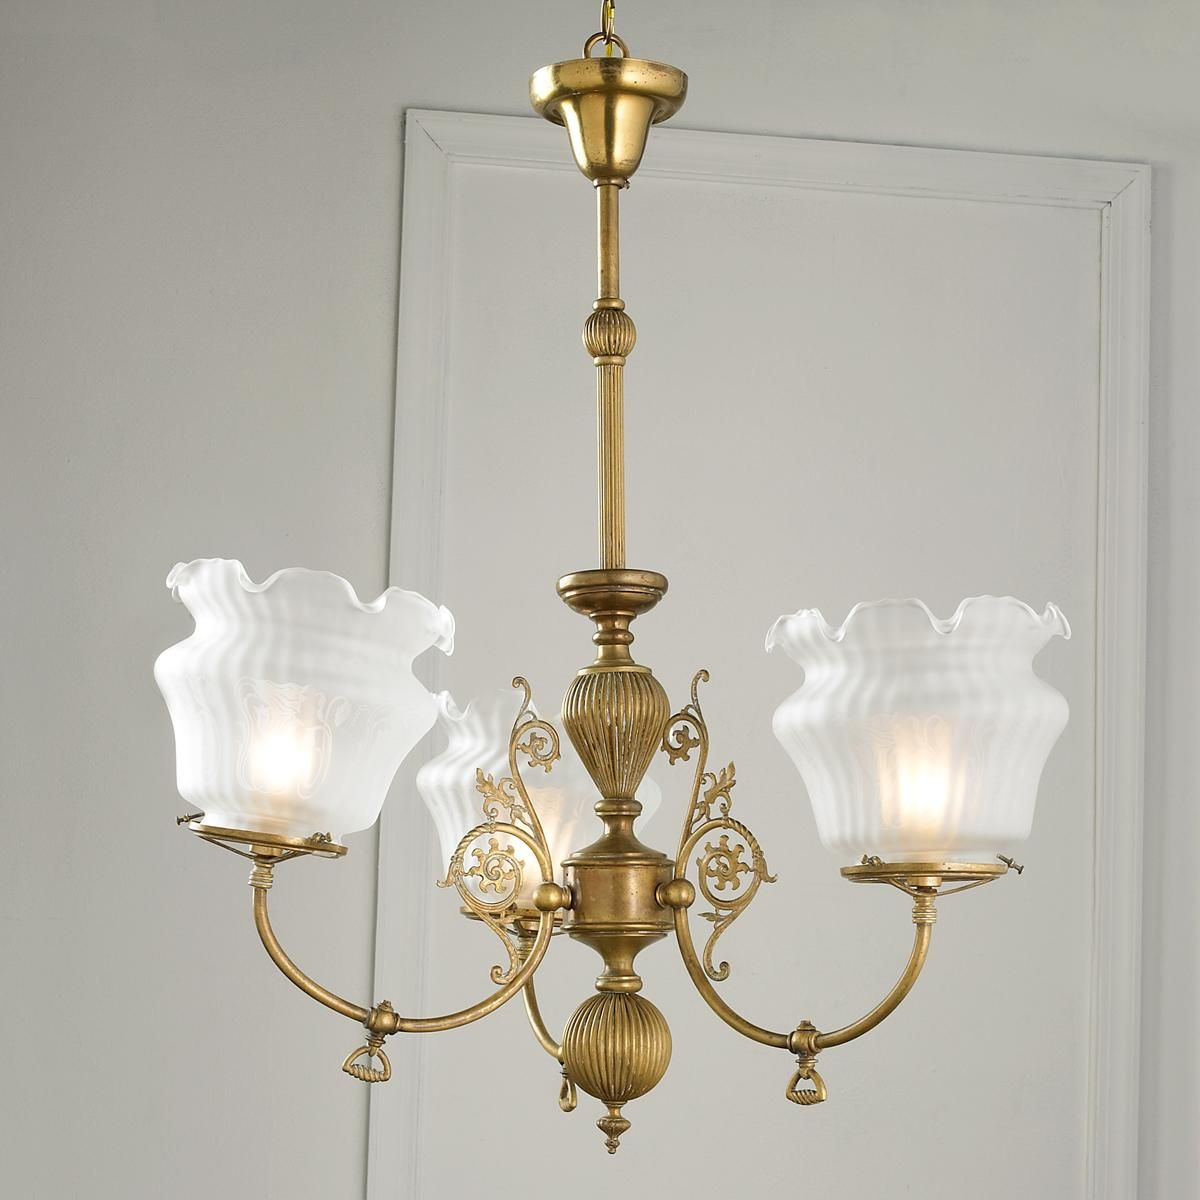 Converted Antique Gas Chandelier